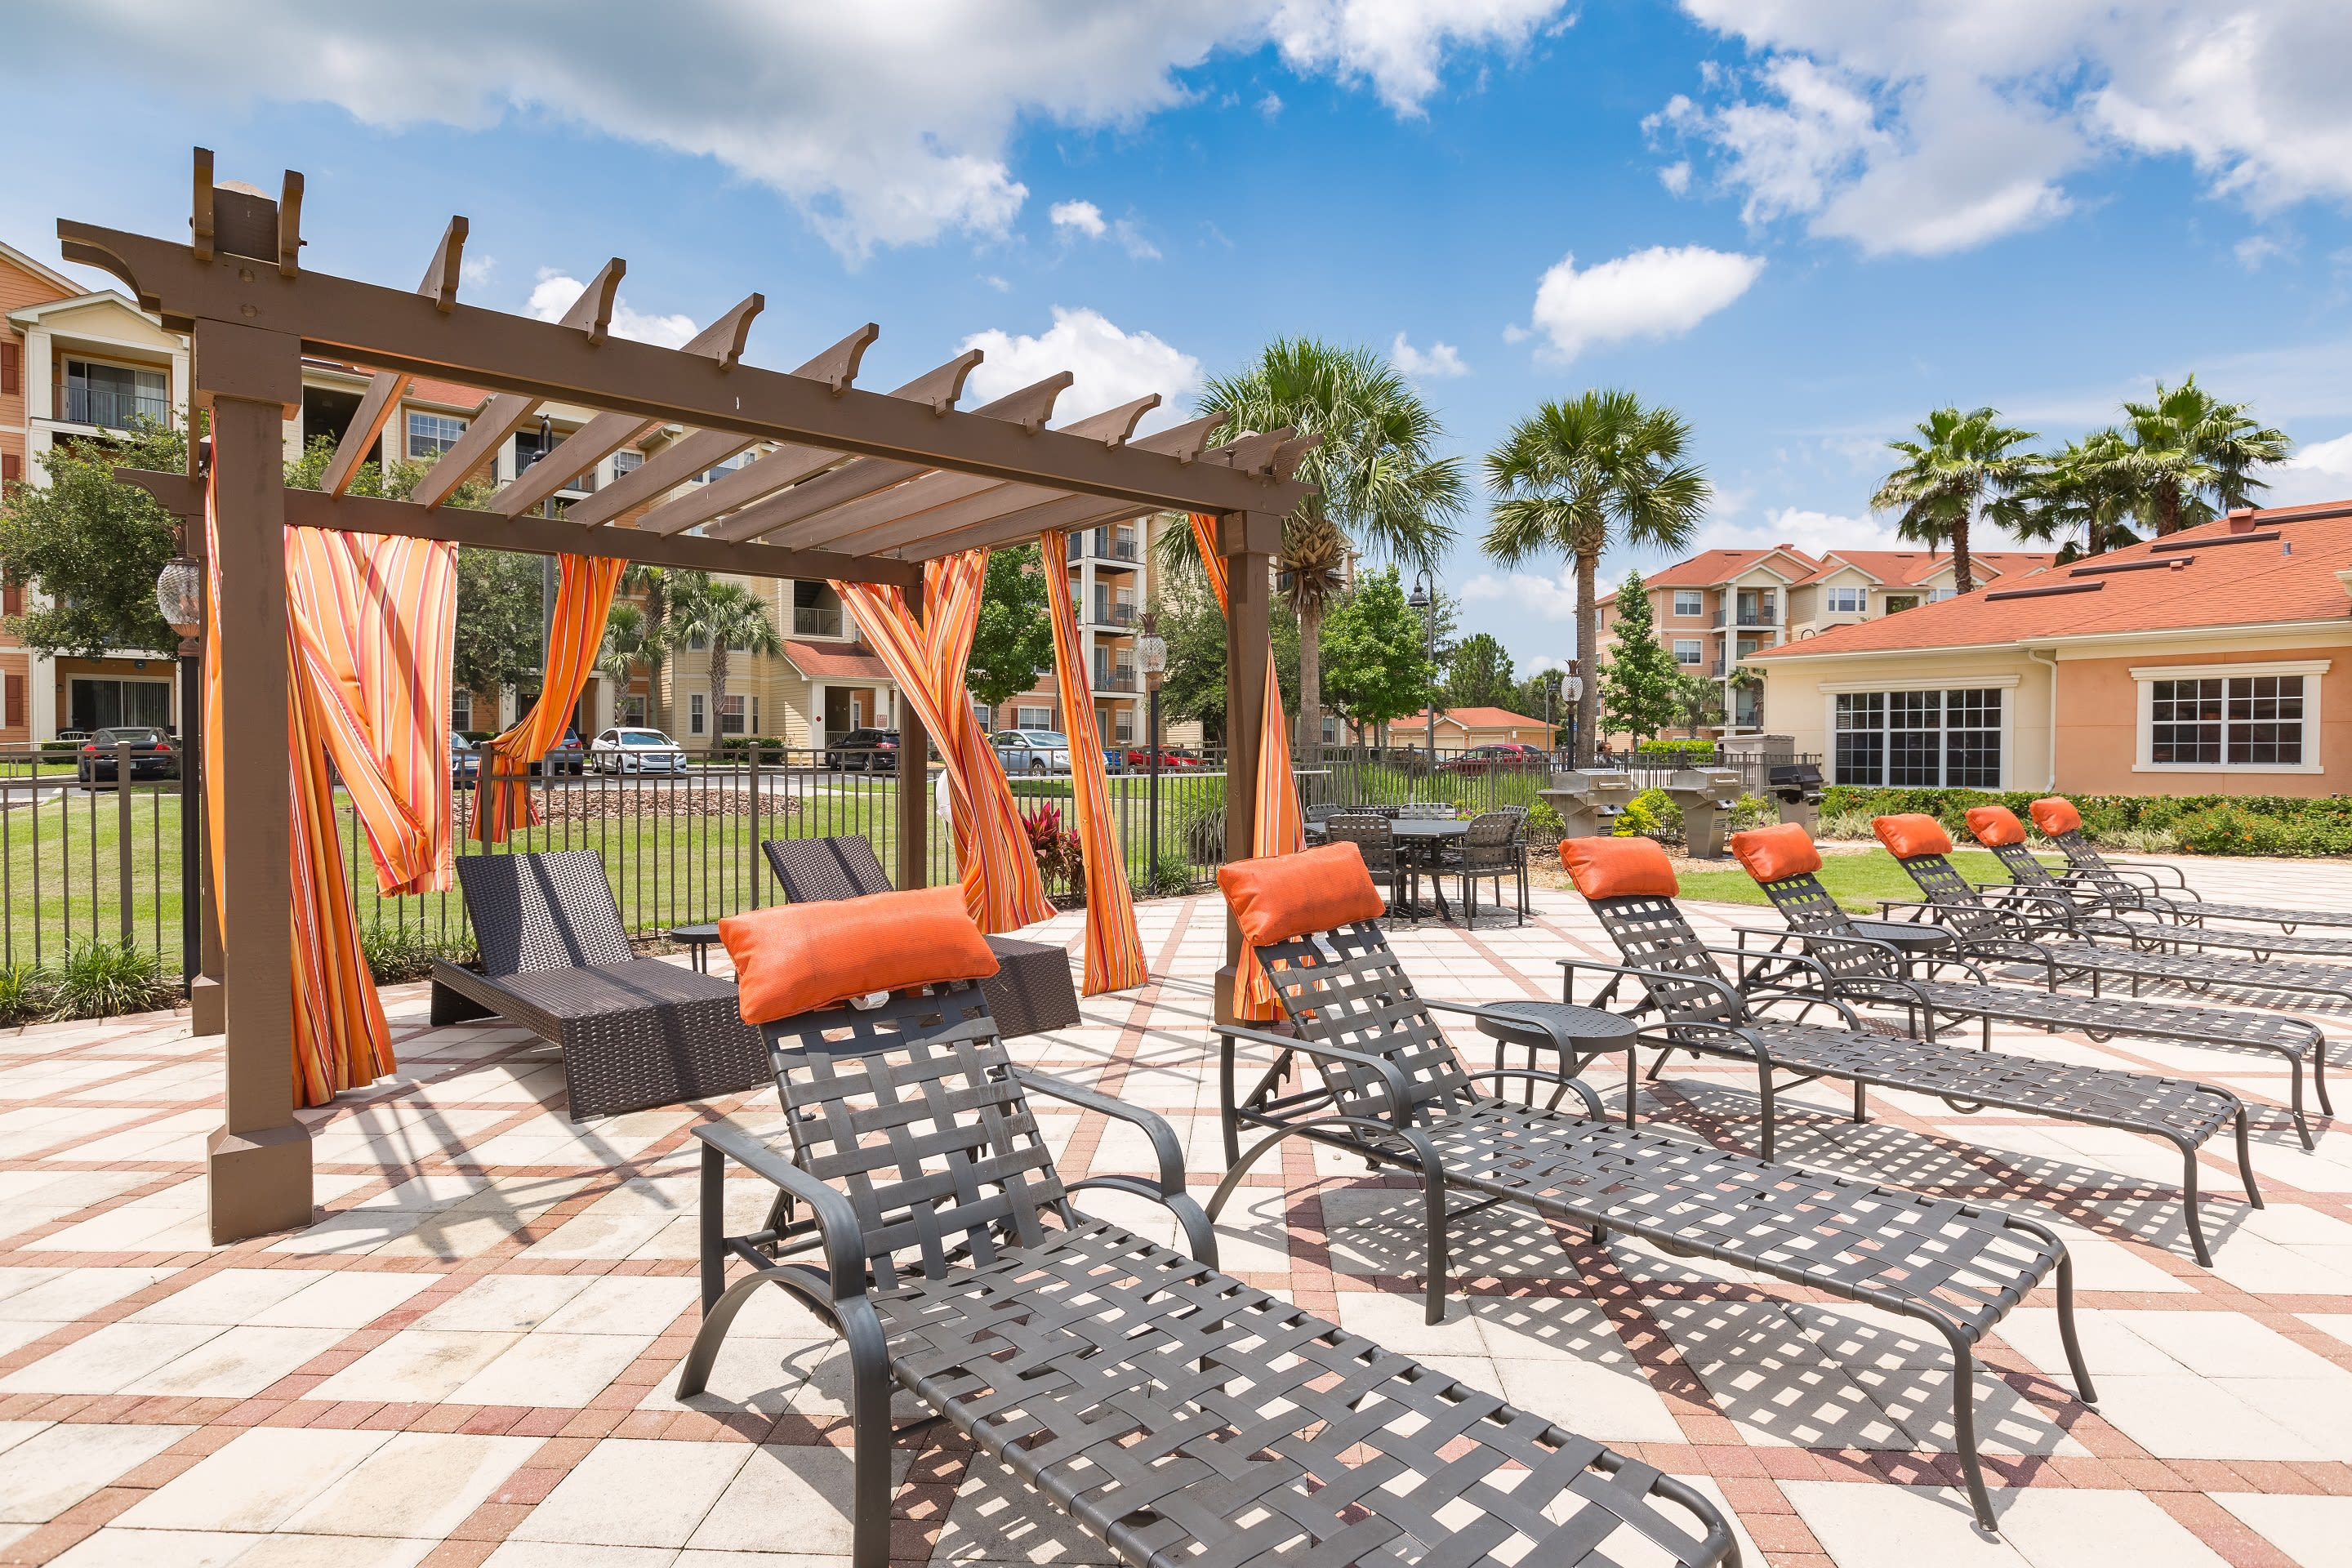 Exteriors of The Aspect in Kissimmee, Florida